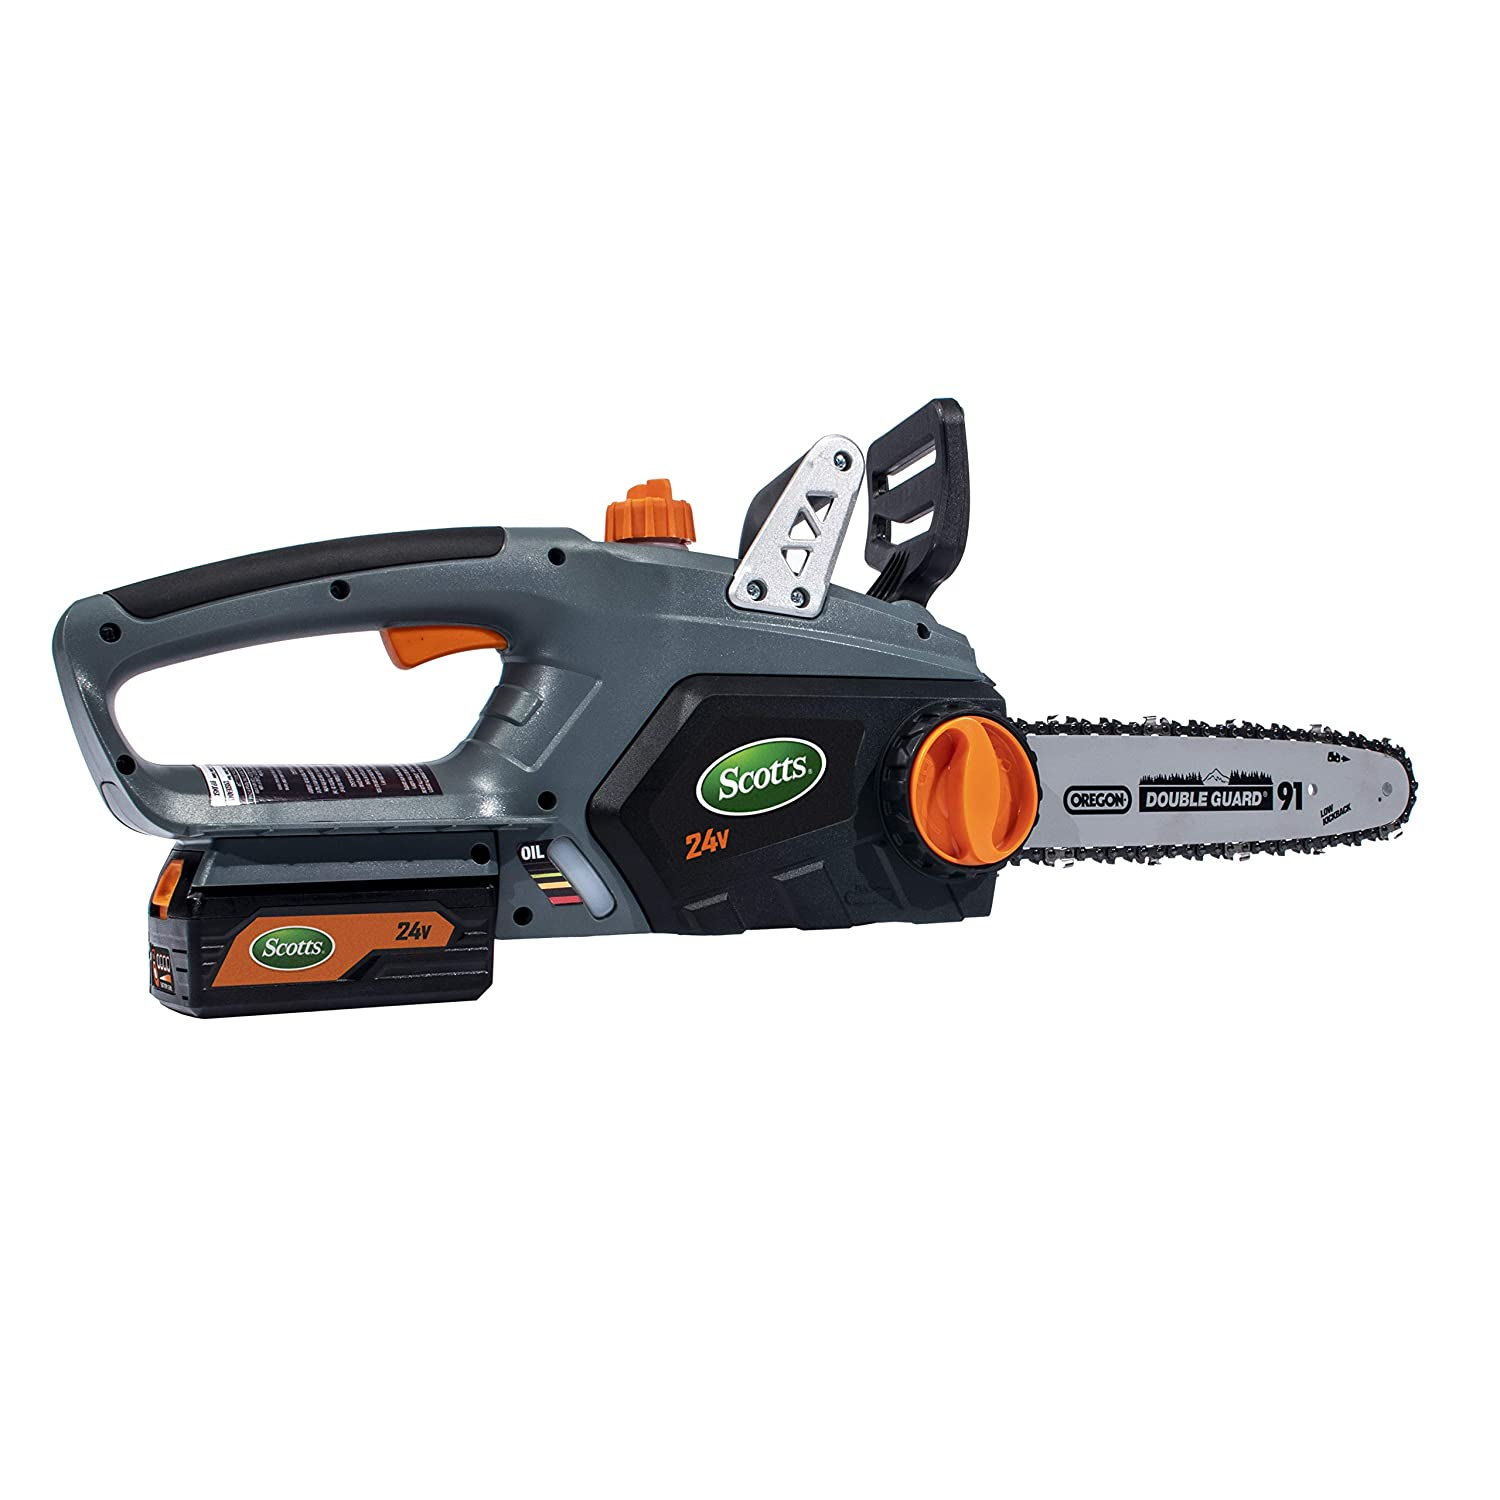 Scotts Outdoor Power Tools LCS31224S featured image 5